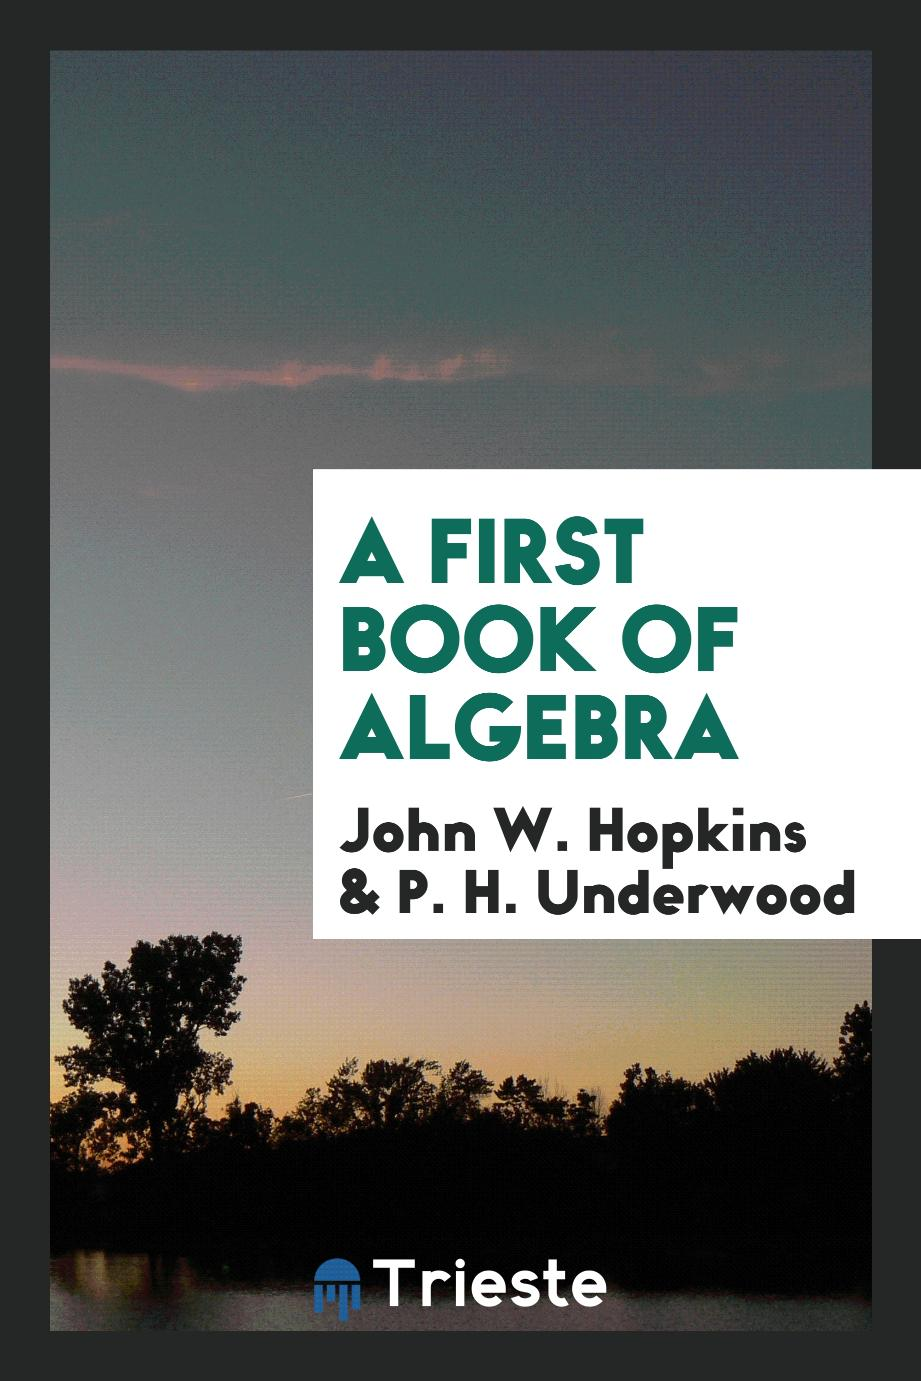 A First Book of Algebra